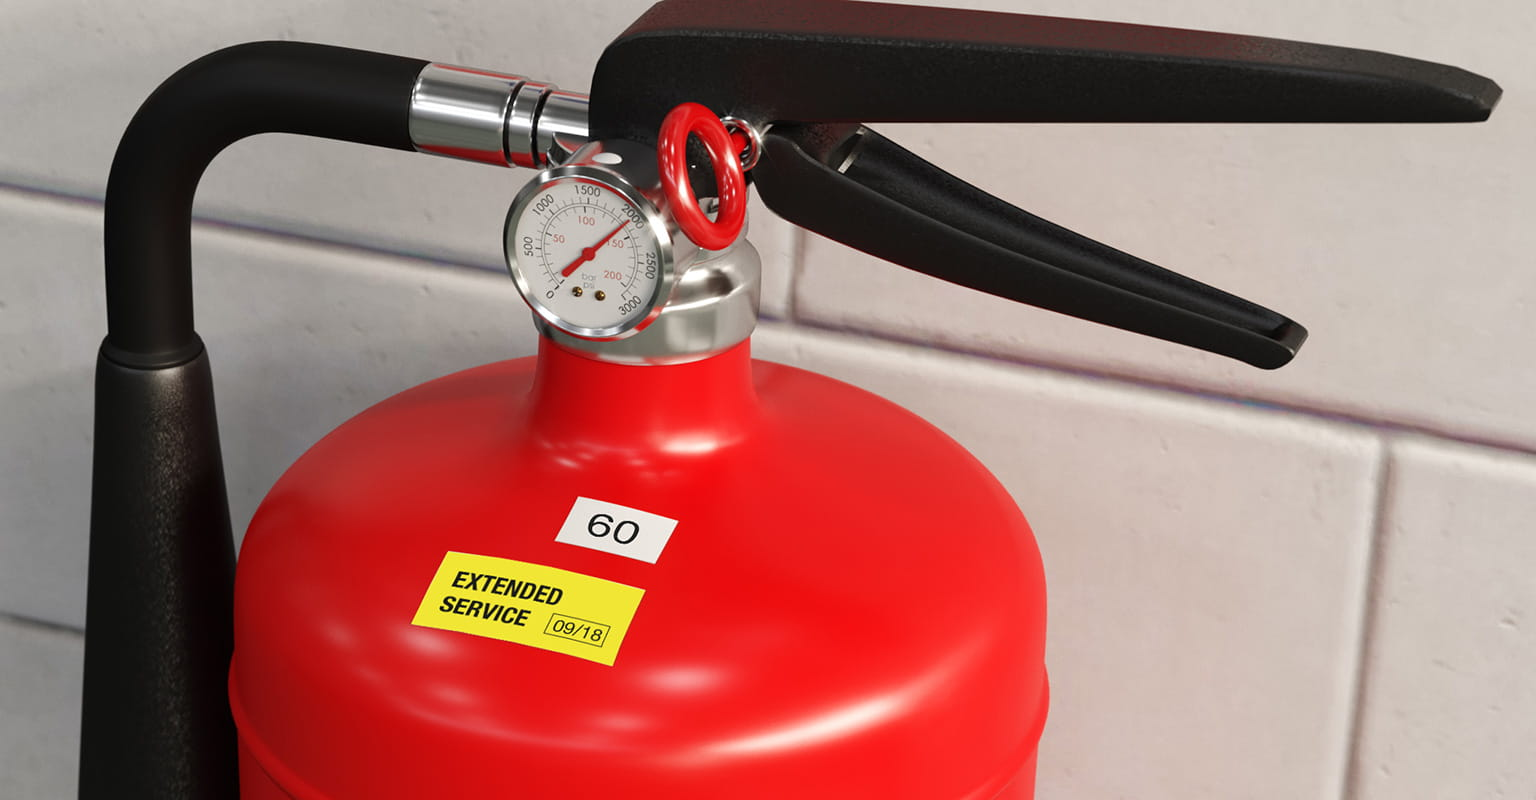 Brother P-touch label on fire extinguisher